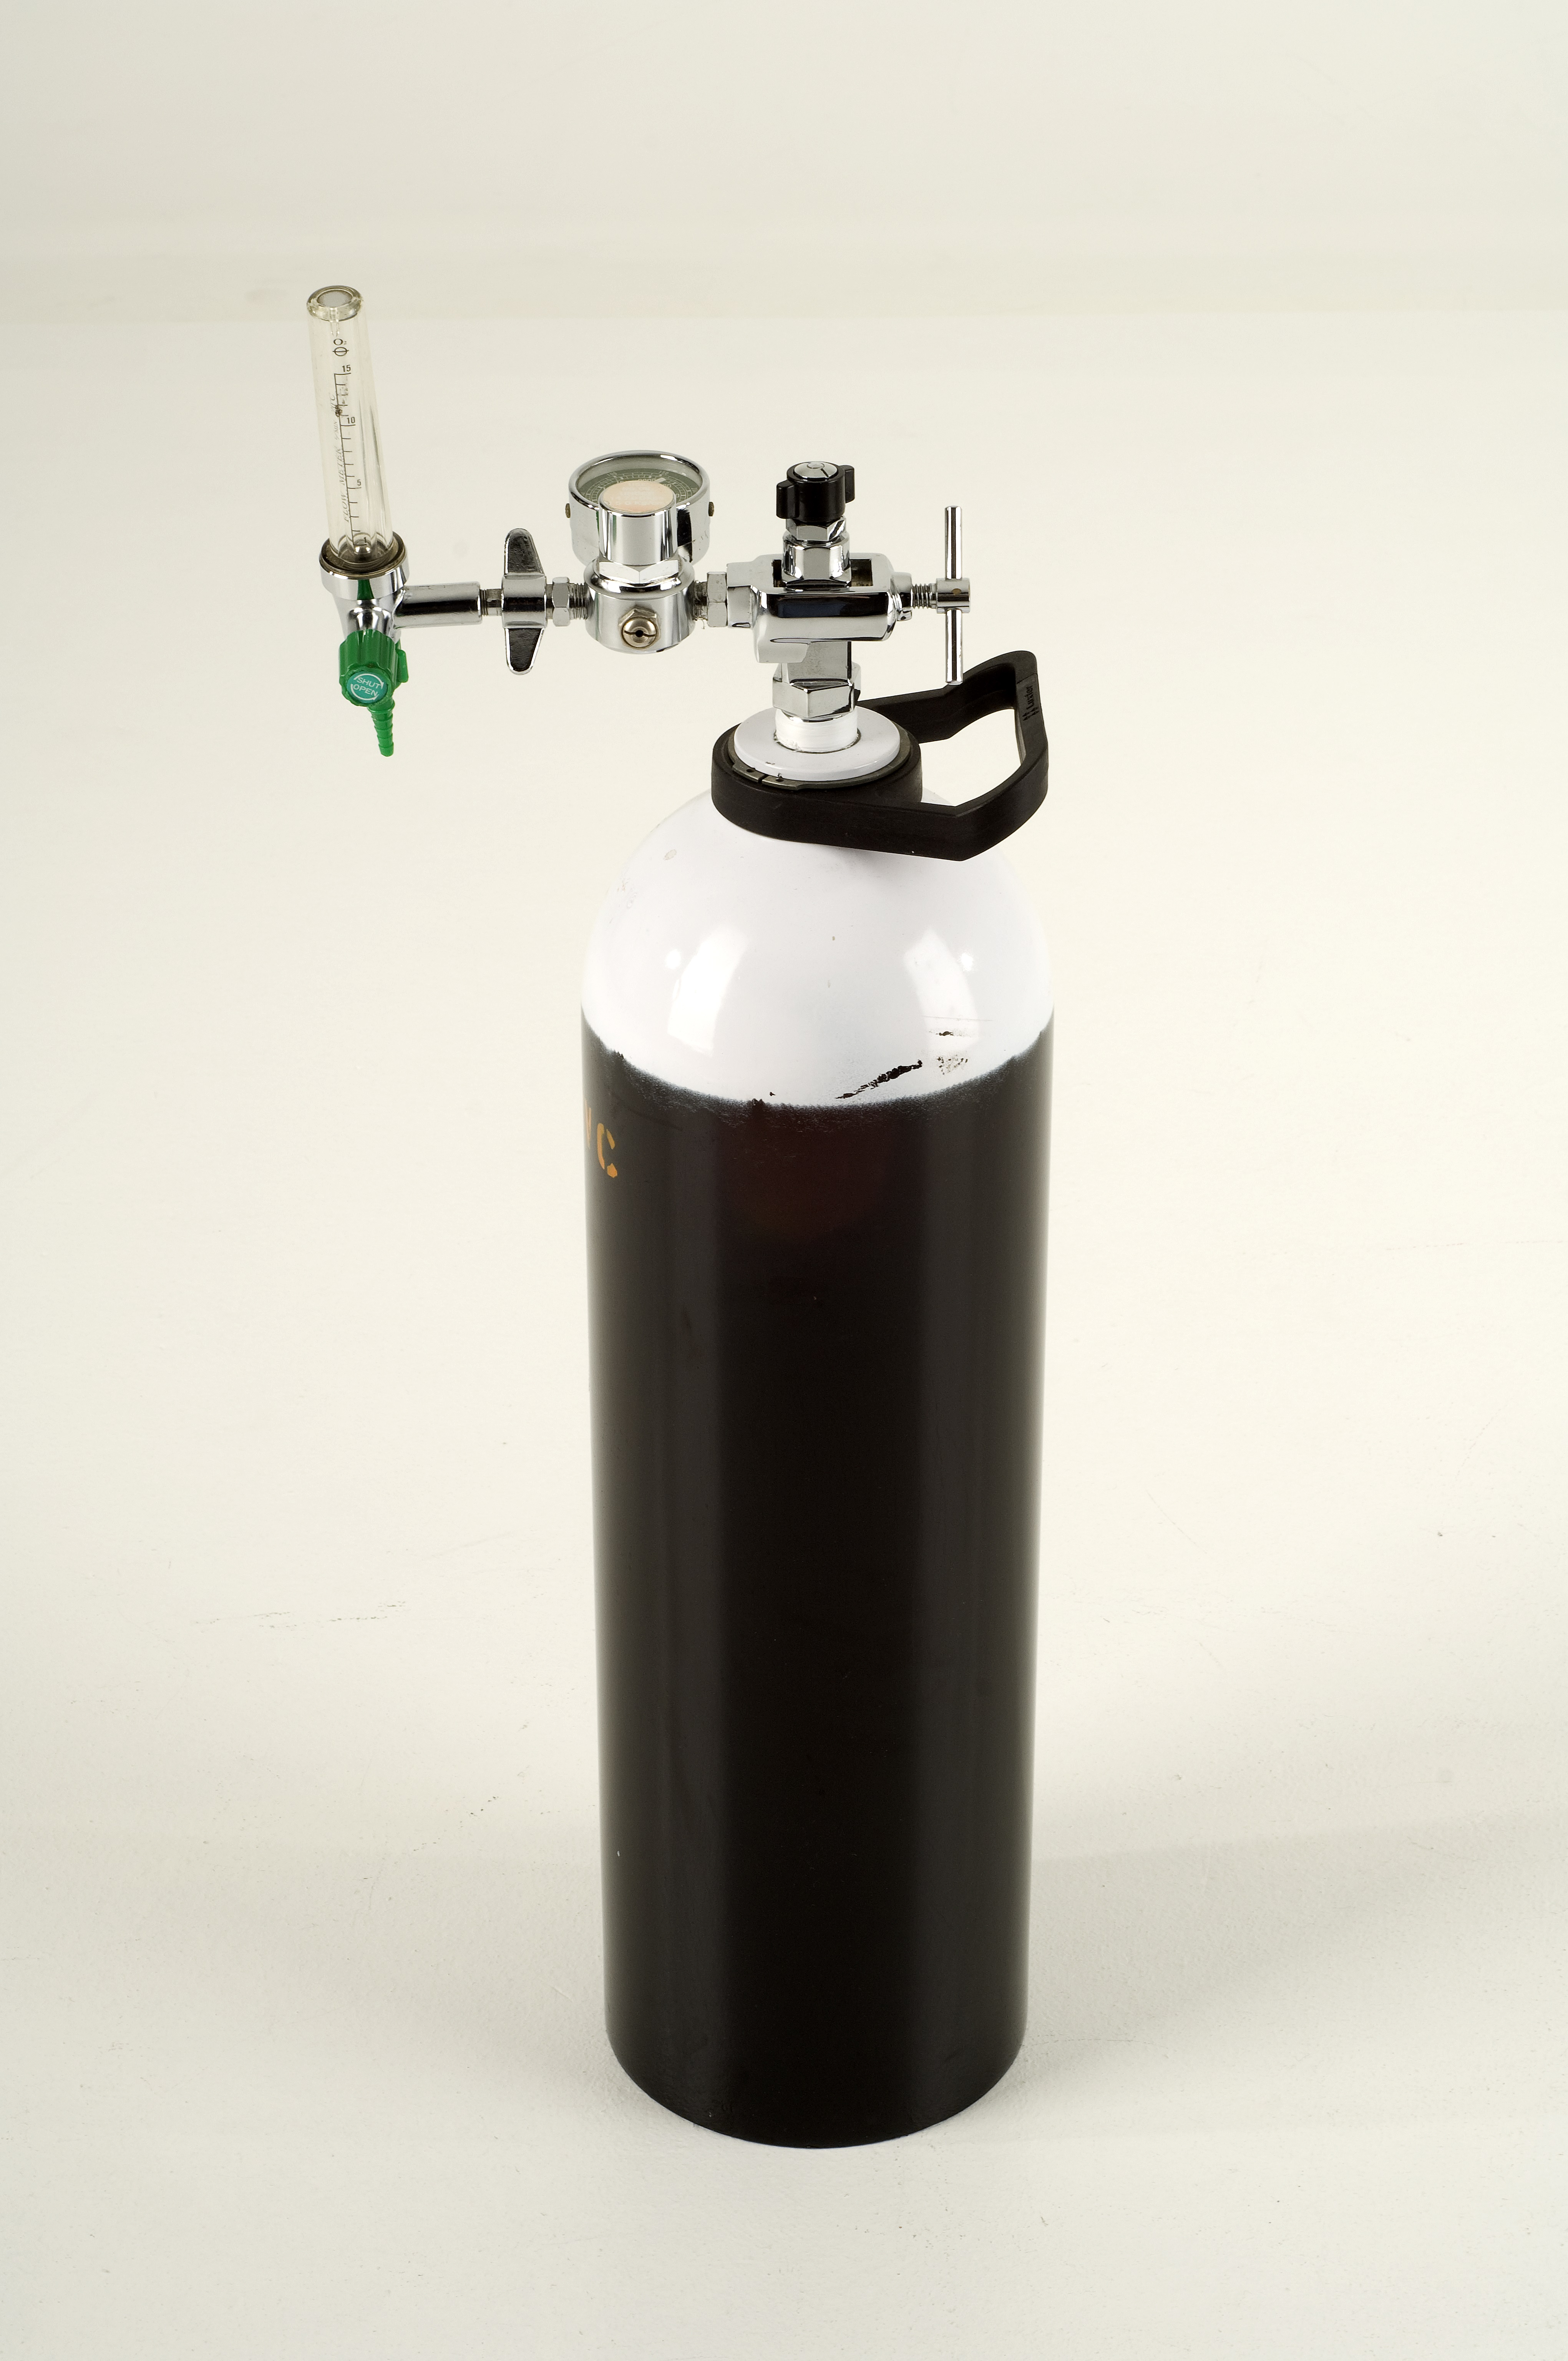 Equipment for Sale & Rent   AED & Oxygen Cylinders